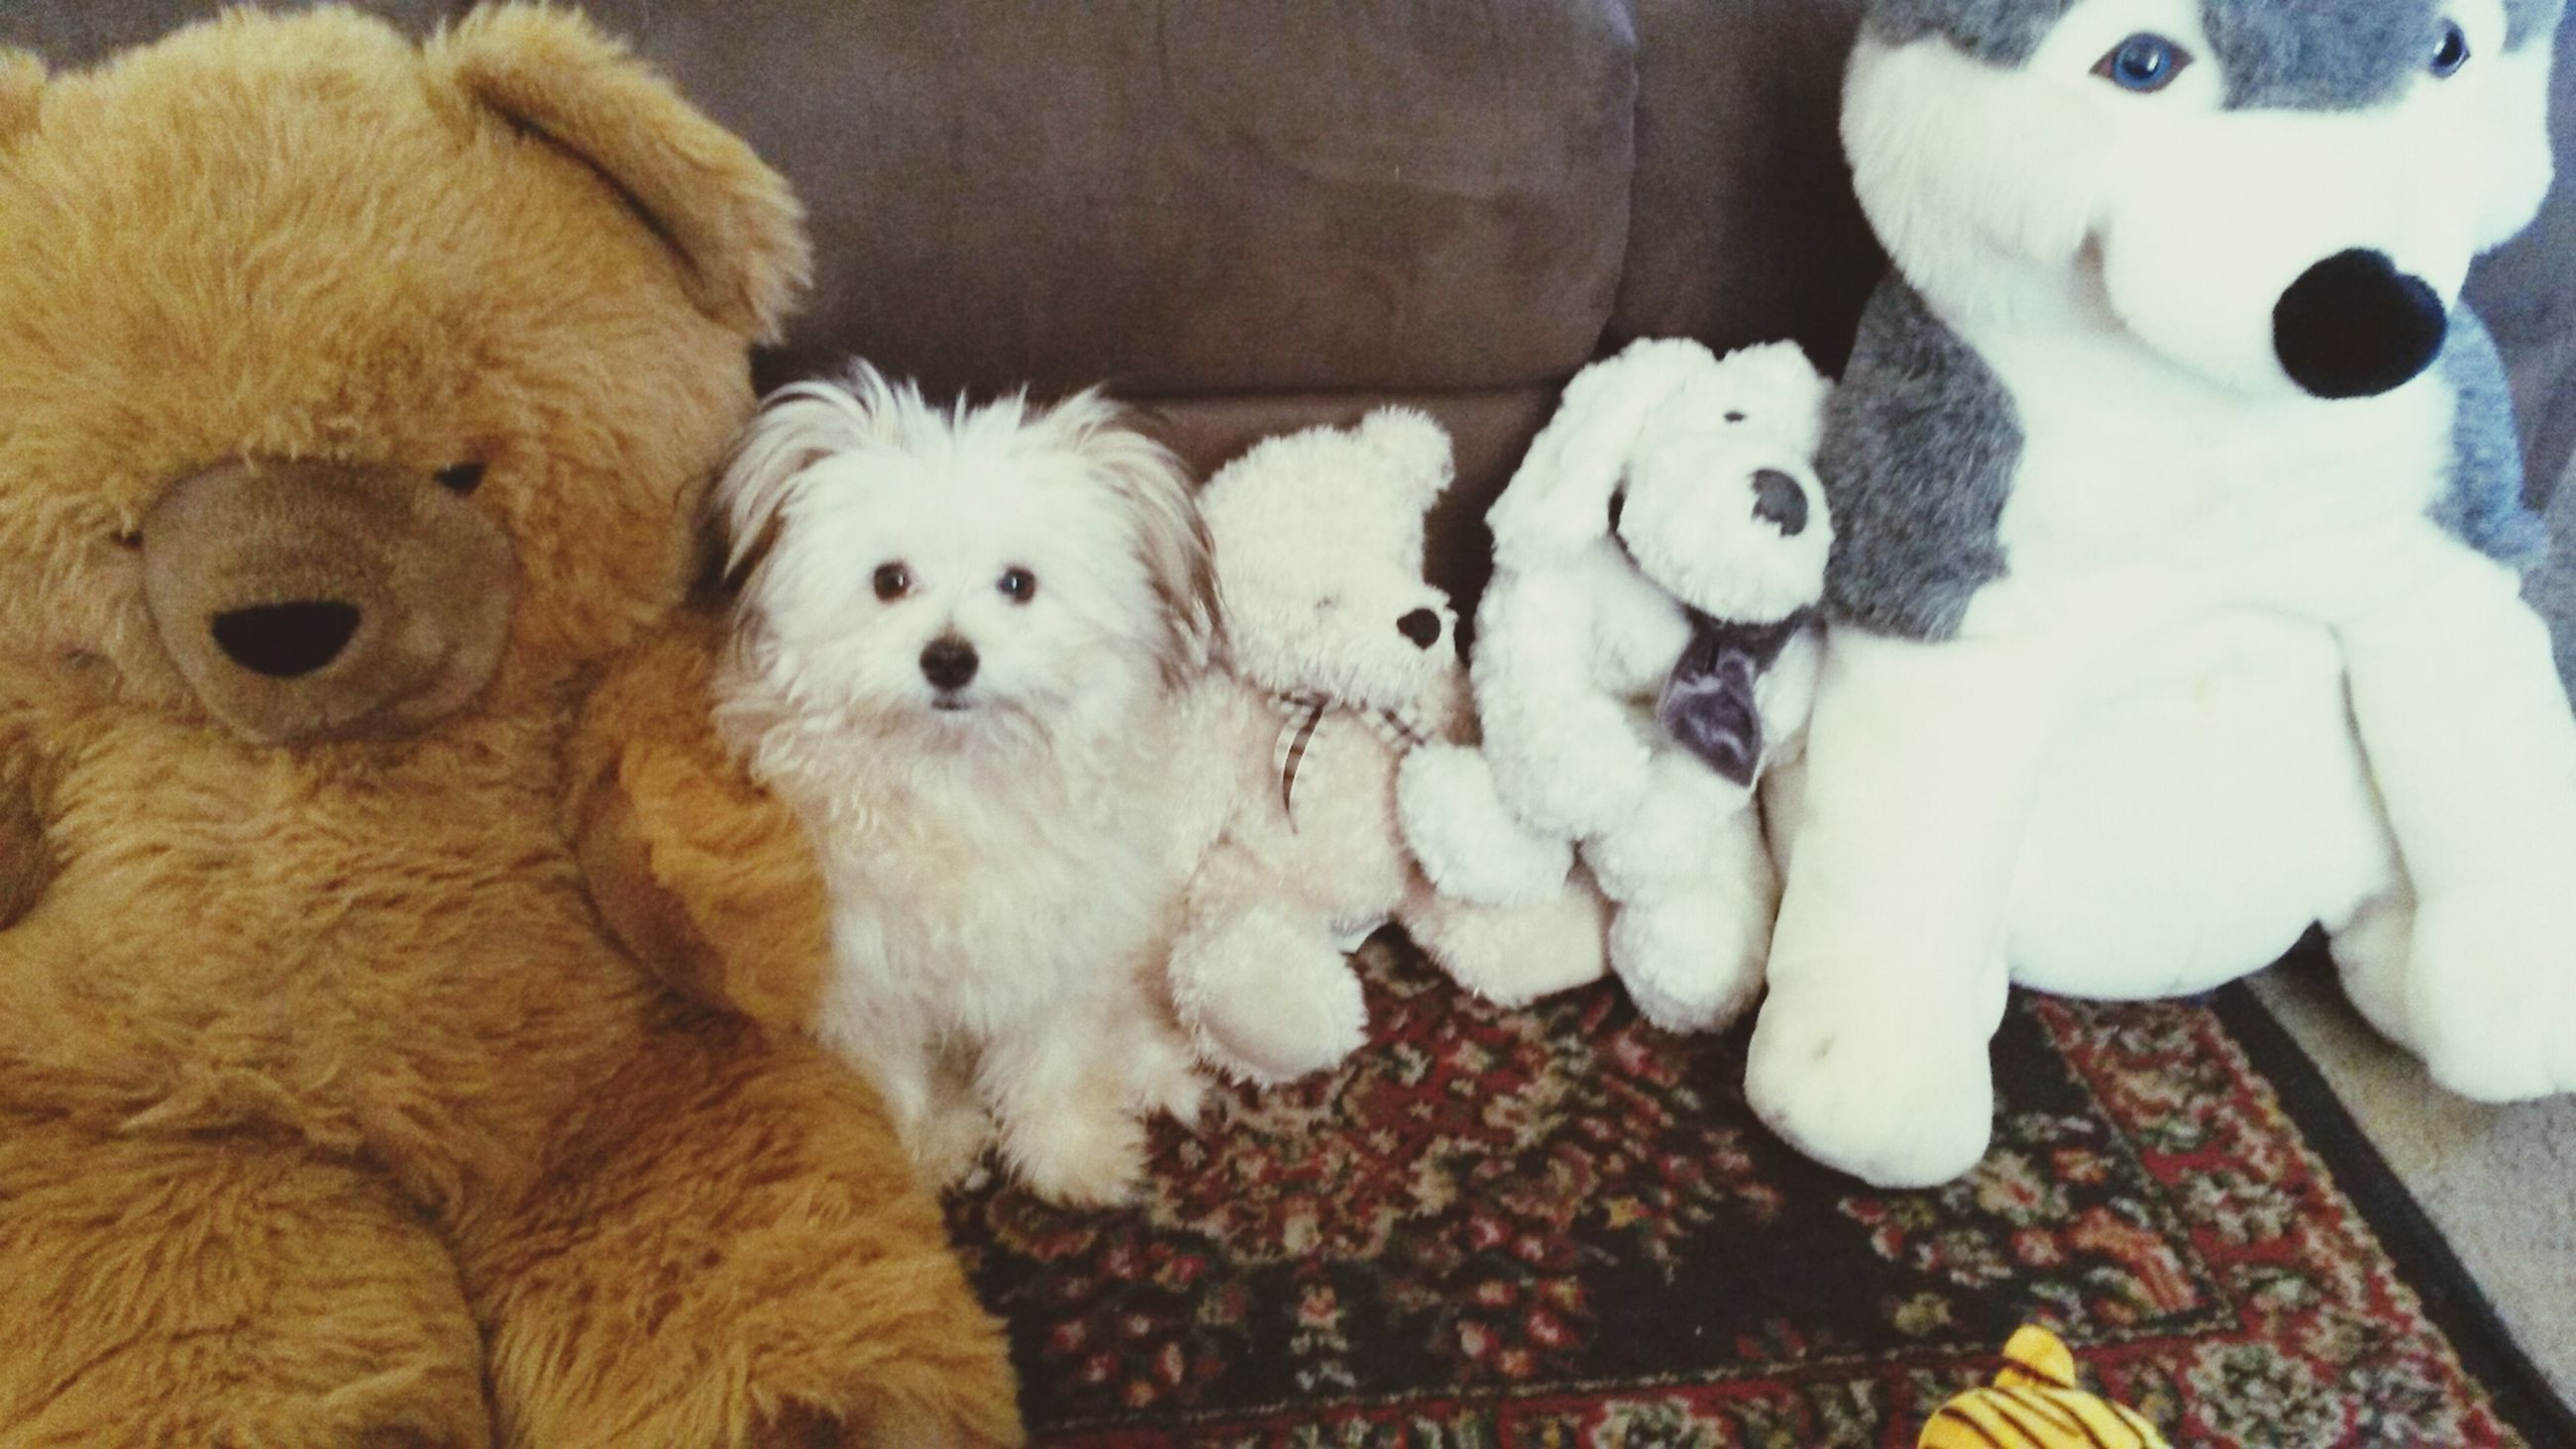 indoors, domestic animals, animal themes, pets, dog, toy, high angle view, mammal, stuffed toy, relaxation, white color, animal representation, cute, one animal, no people, home interior, resting, portrait, lying down, close-up